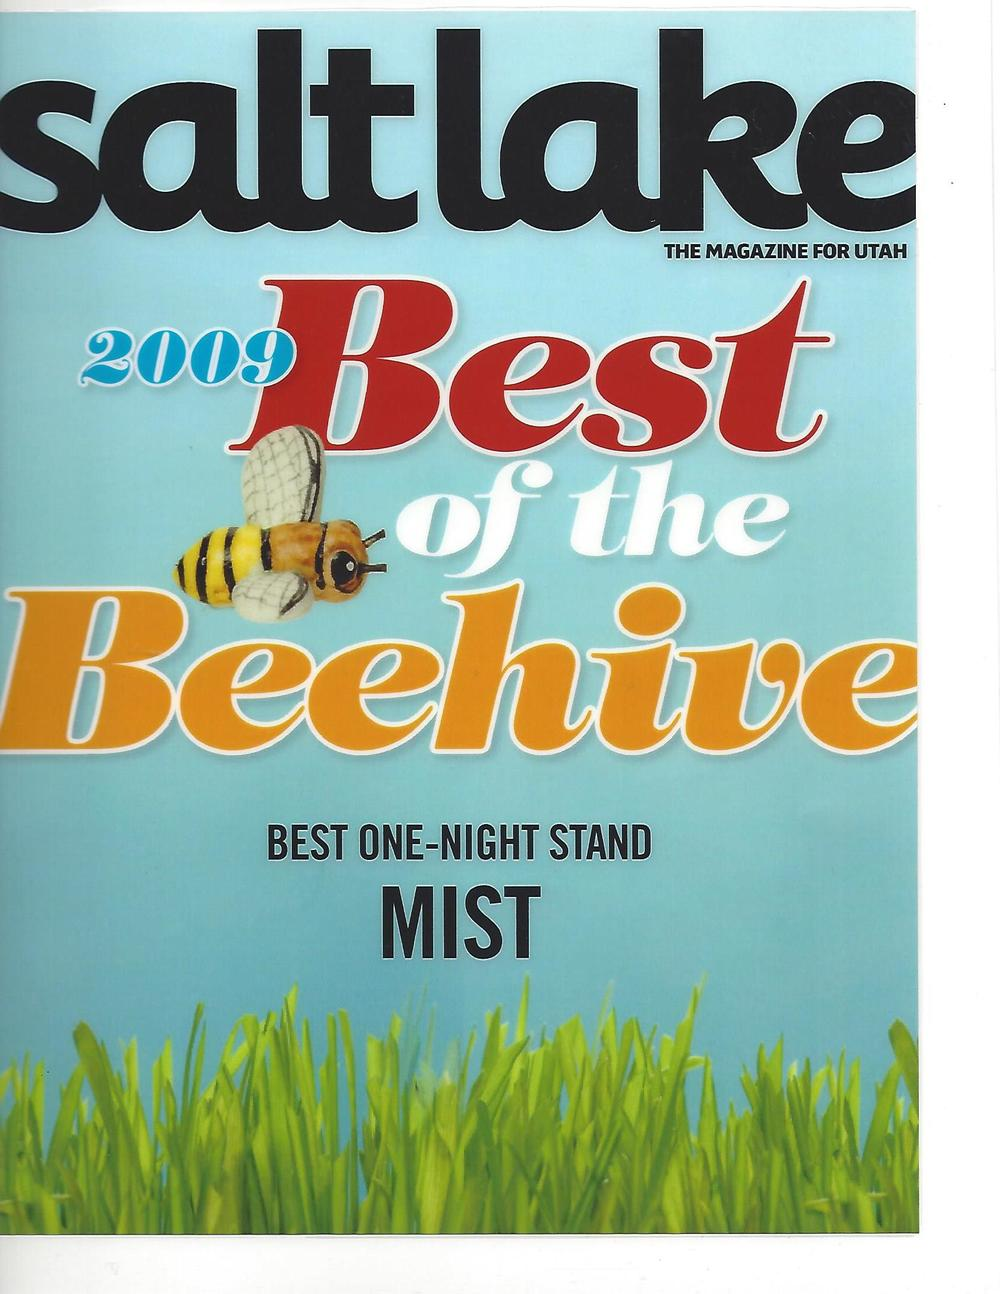 Rikka won Best One Night Stand for Mist! (Salt Lake Magazine 2009).jpg